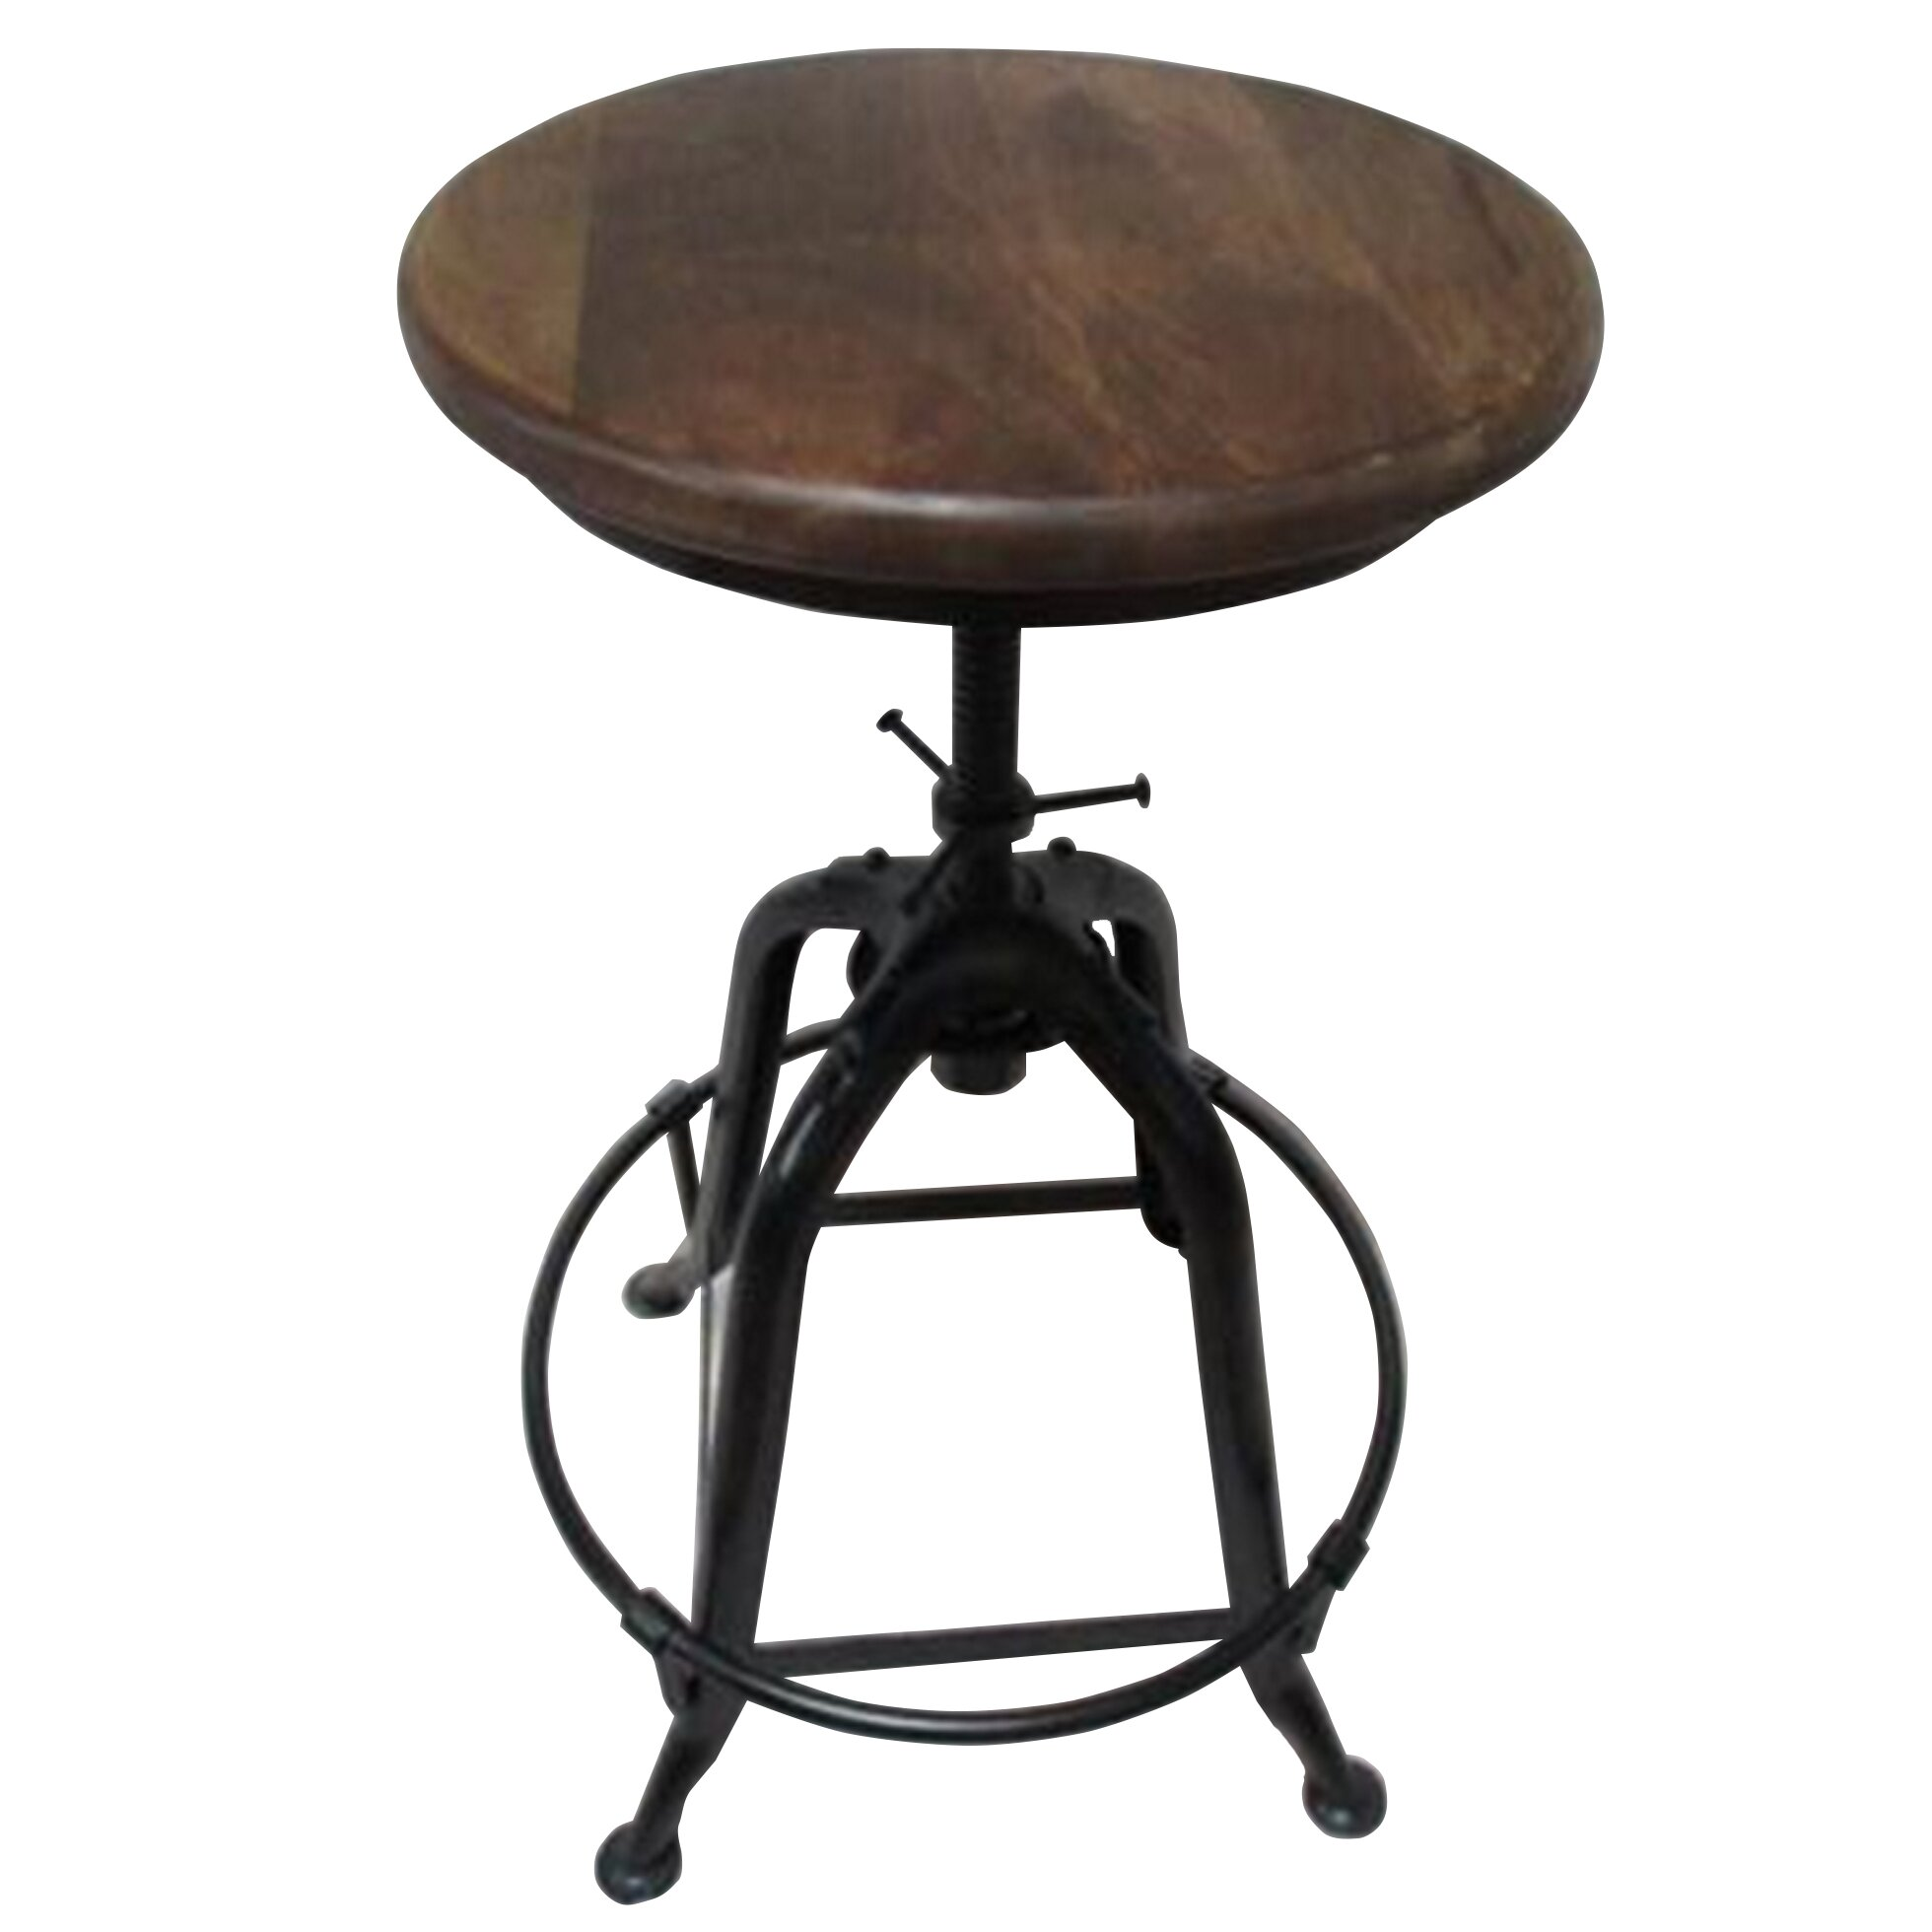 Patio Stool Rustic With Trellis Outdoor Pizza Oven